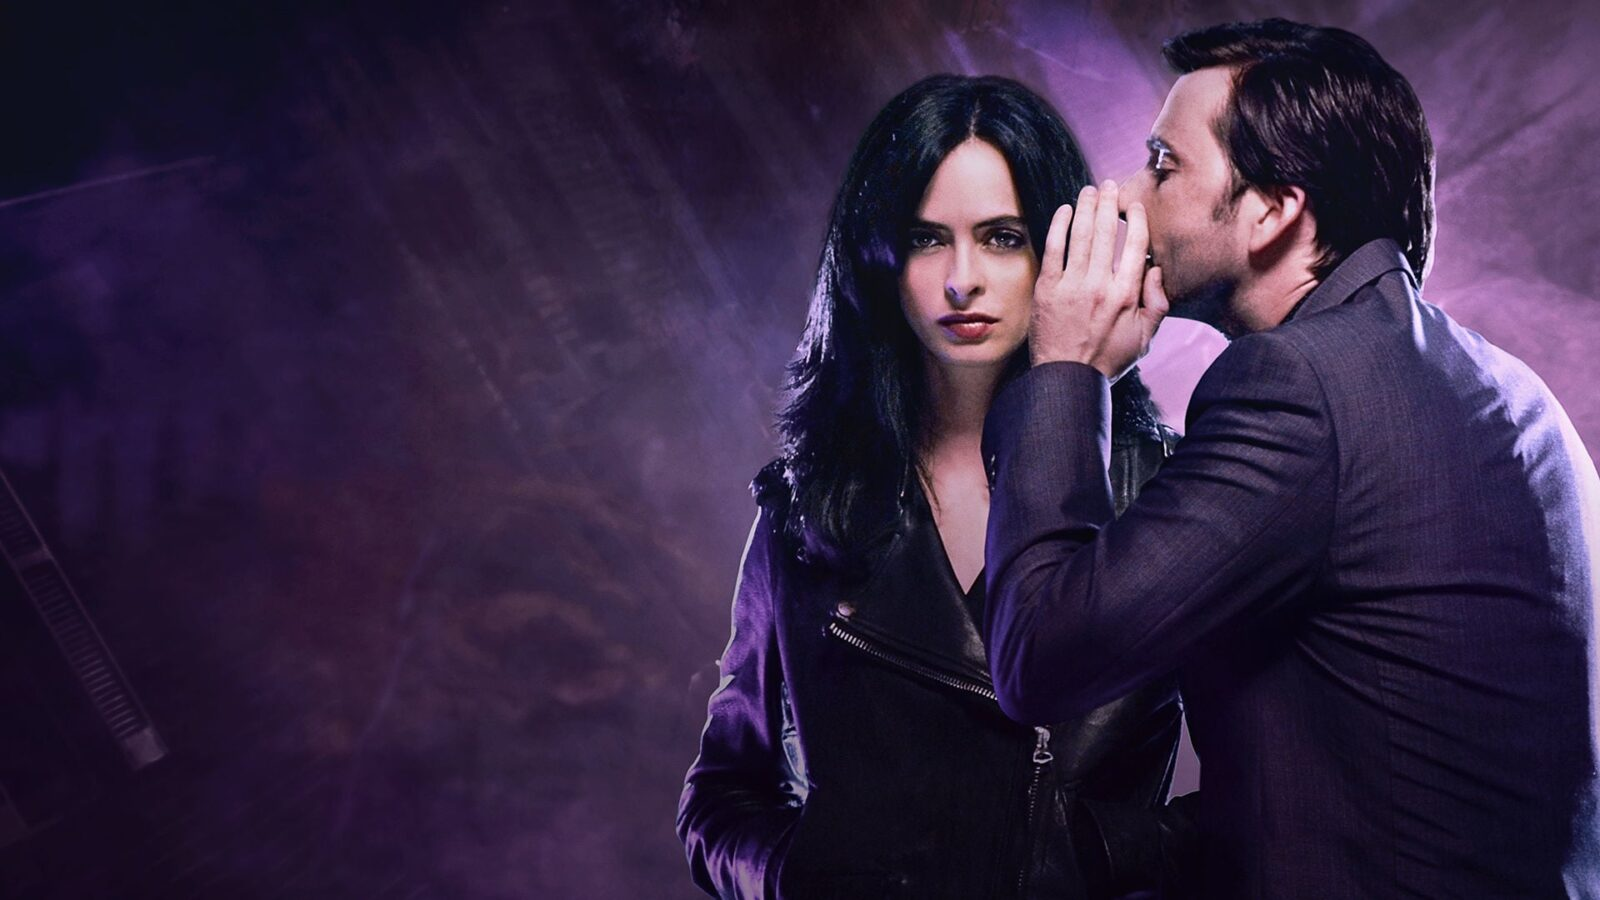 Jessica Jones tv HD wallpapers free Download